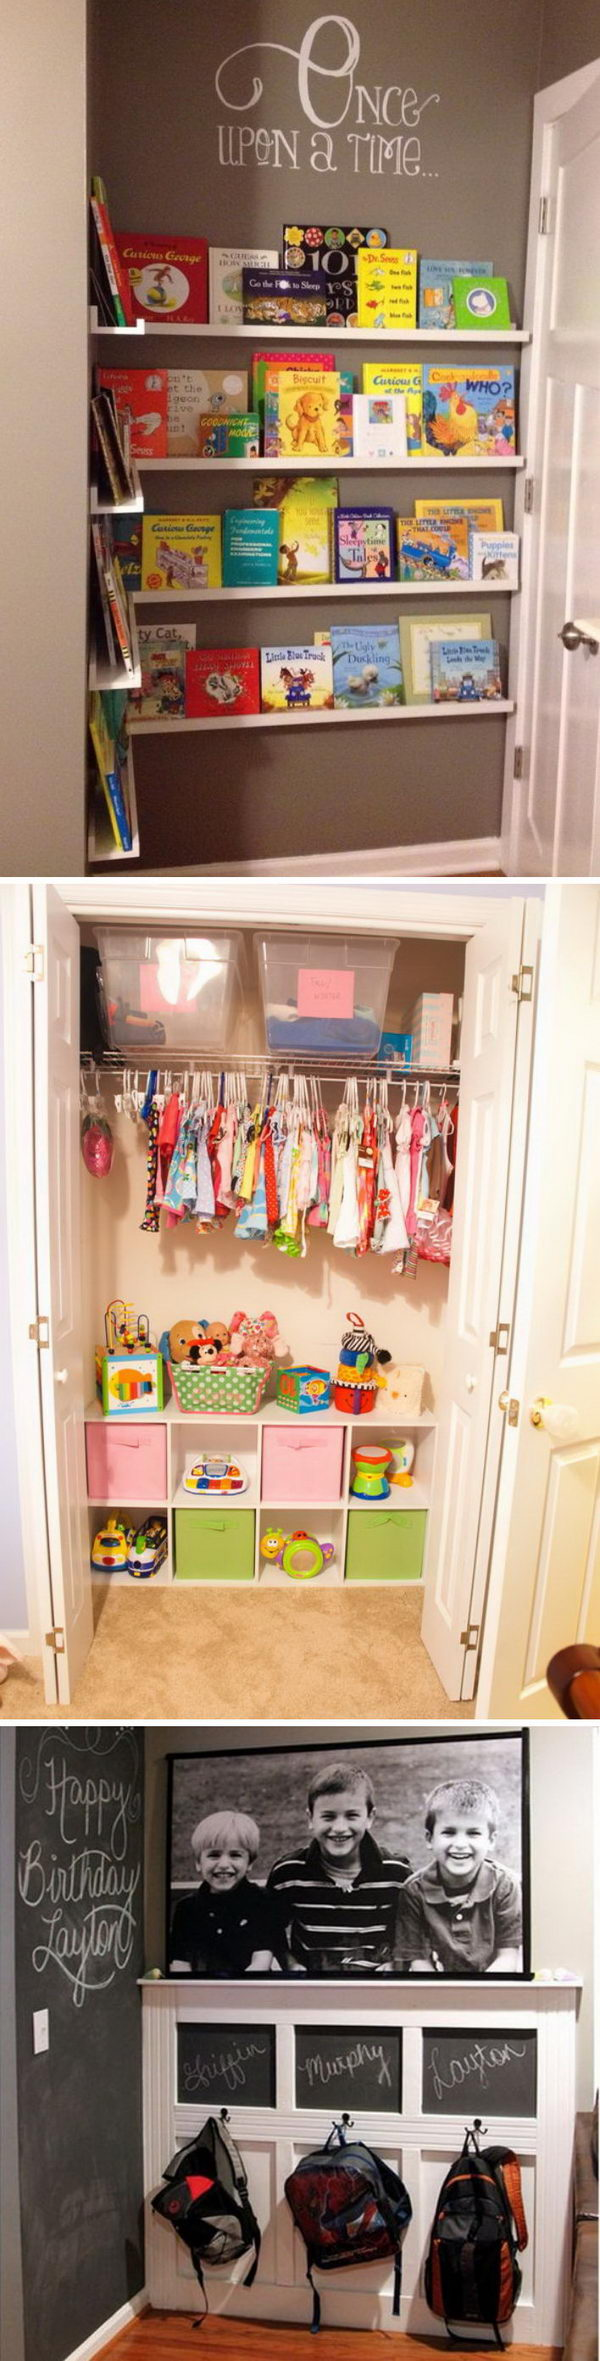 Creative Storage Ideas to Organize Kids' Room.